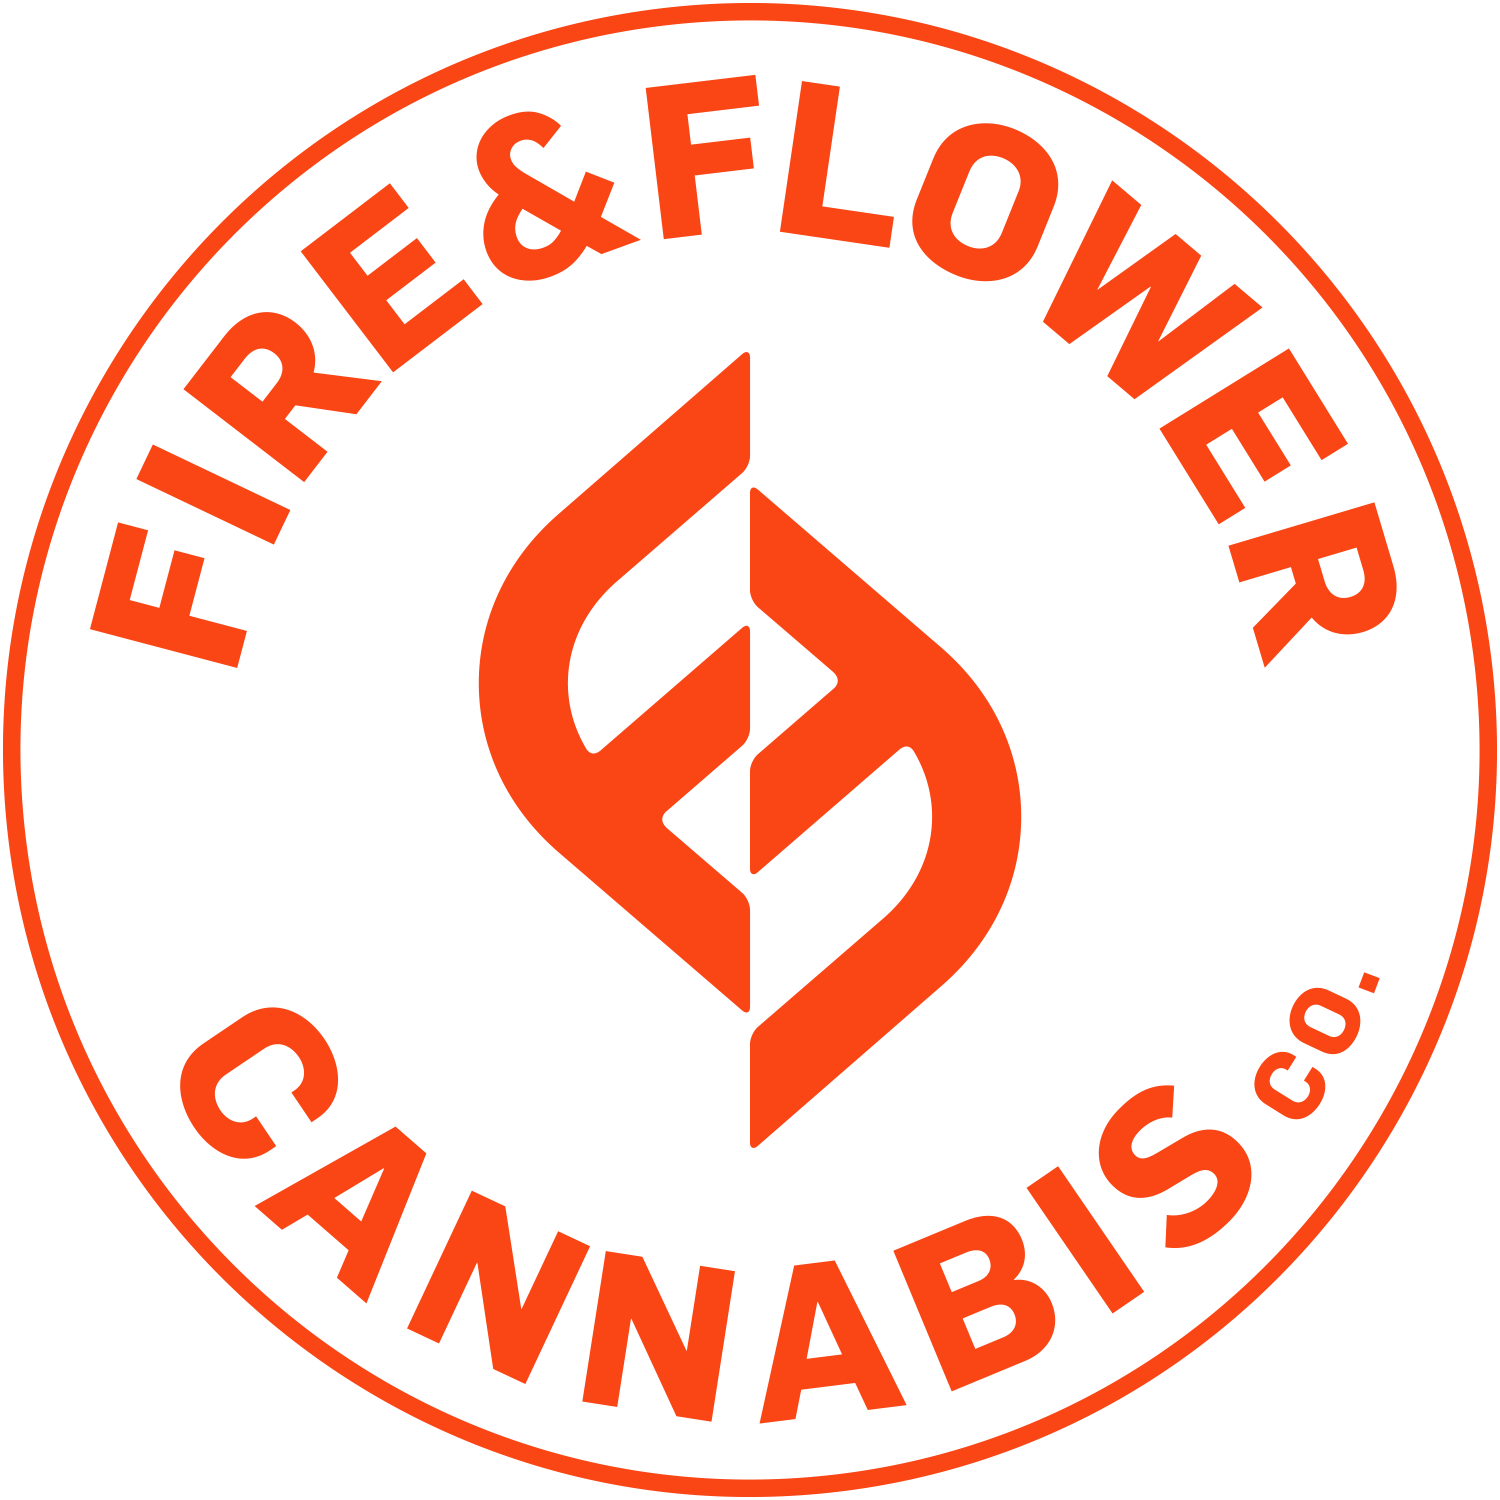 Fire & Flower Cannabis Co. - 9610 165 Avenue NW - Store - tolktalk